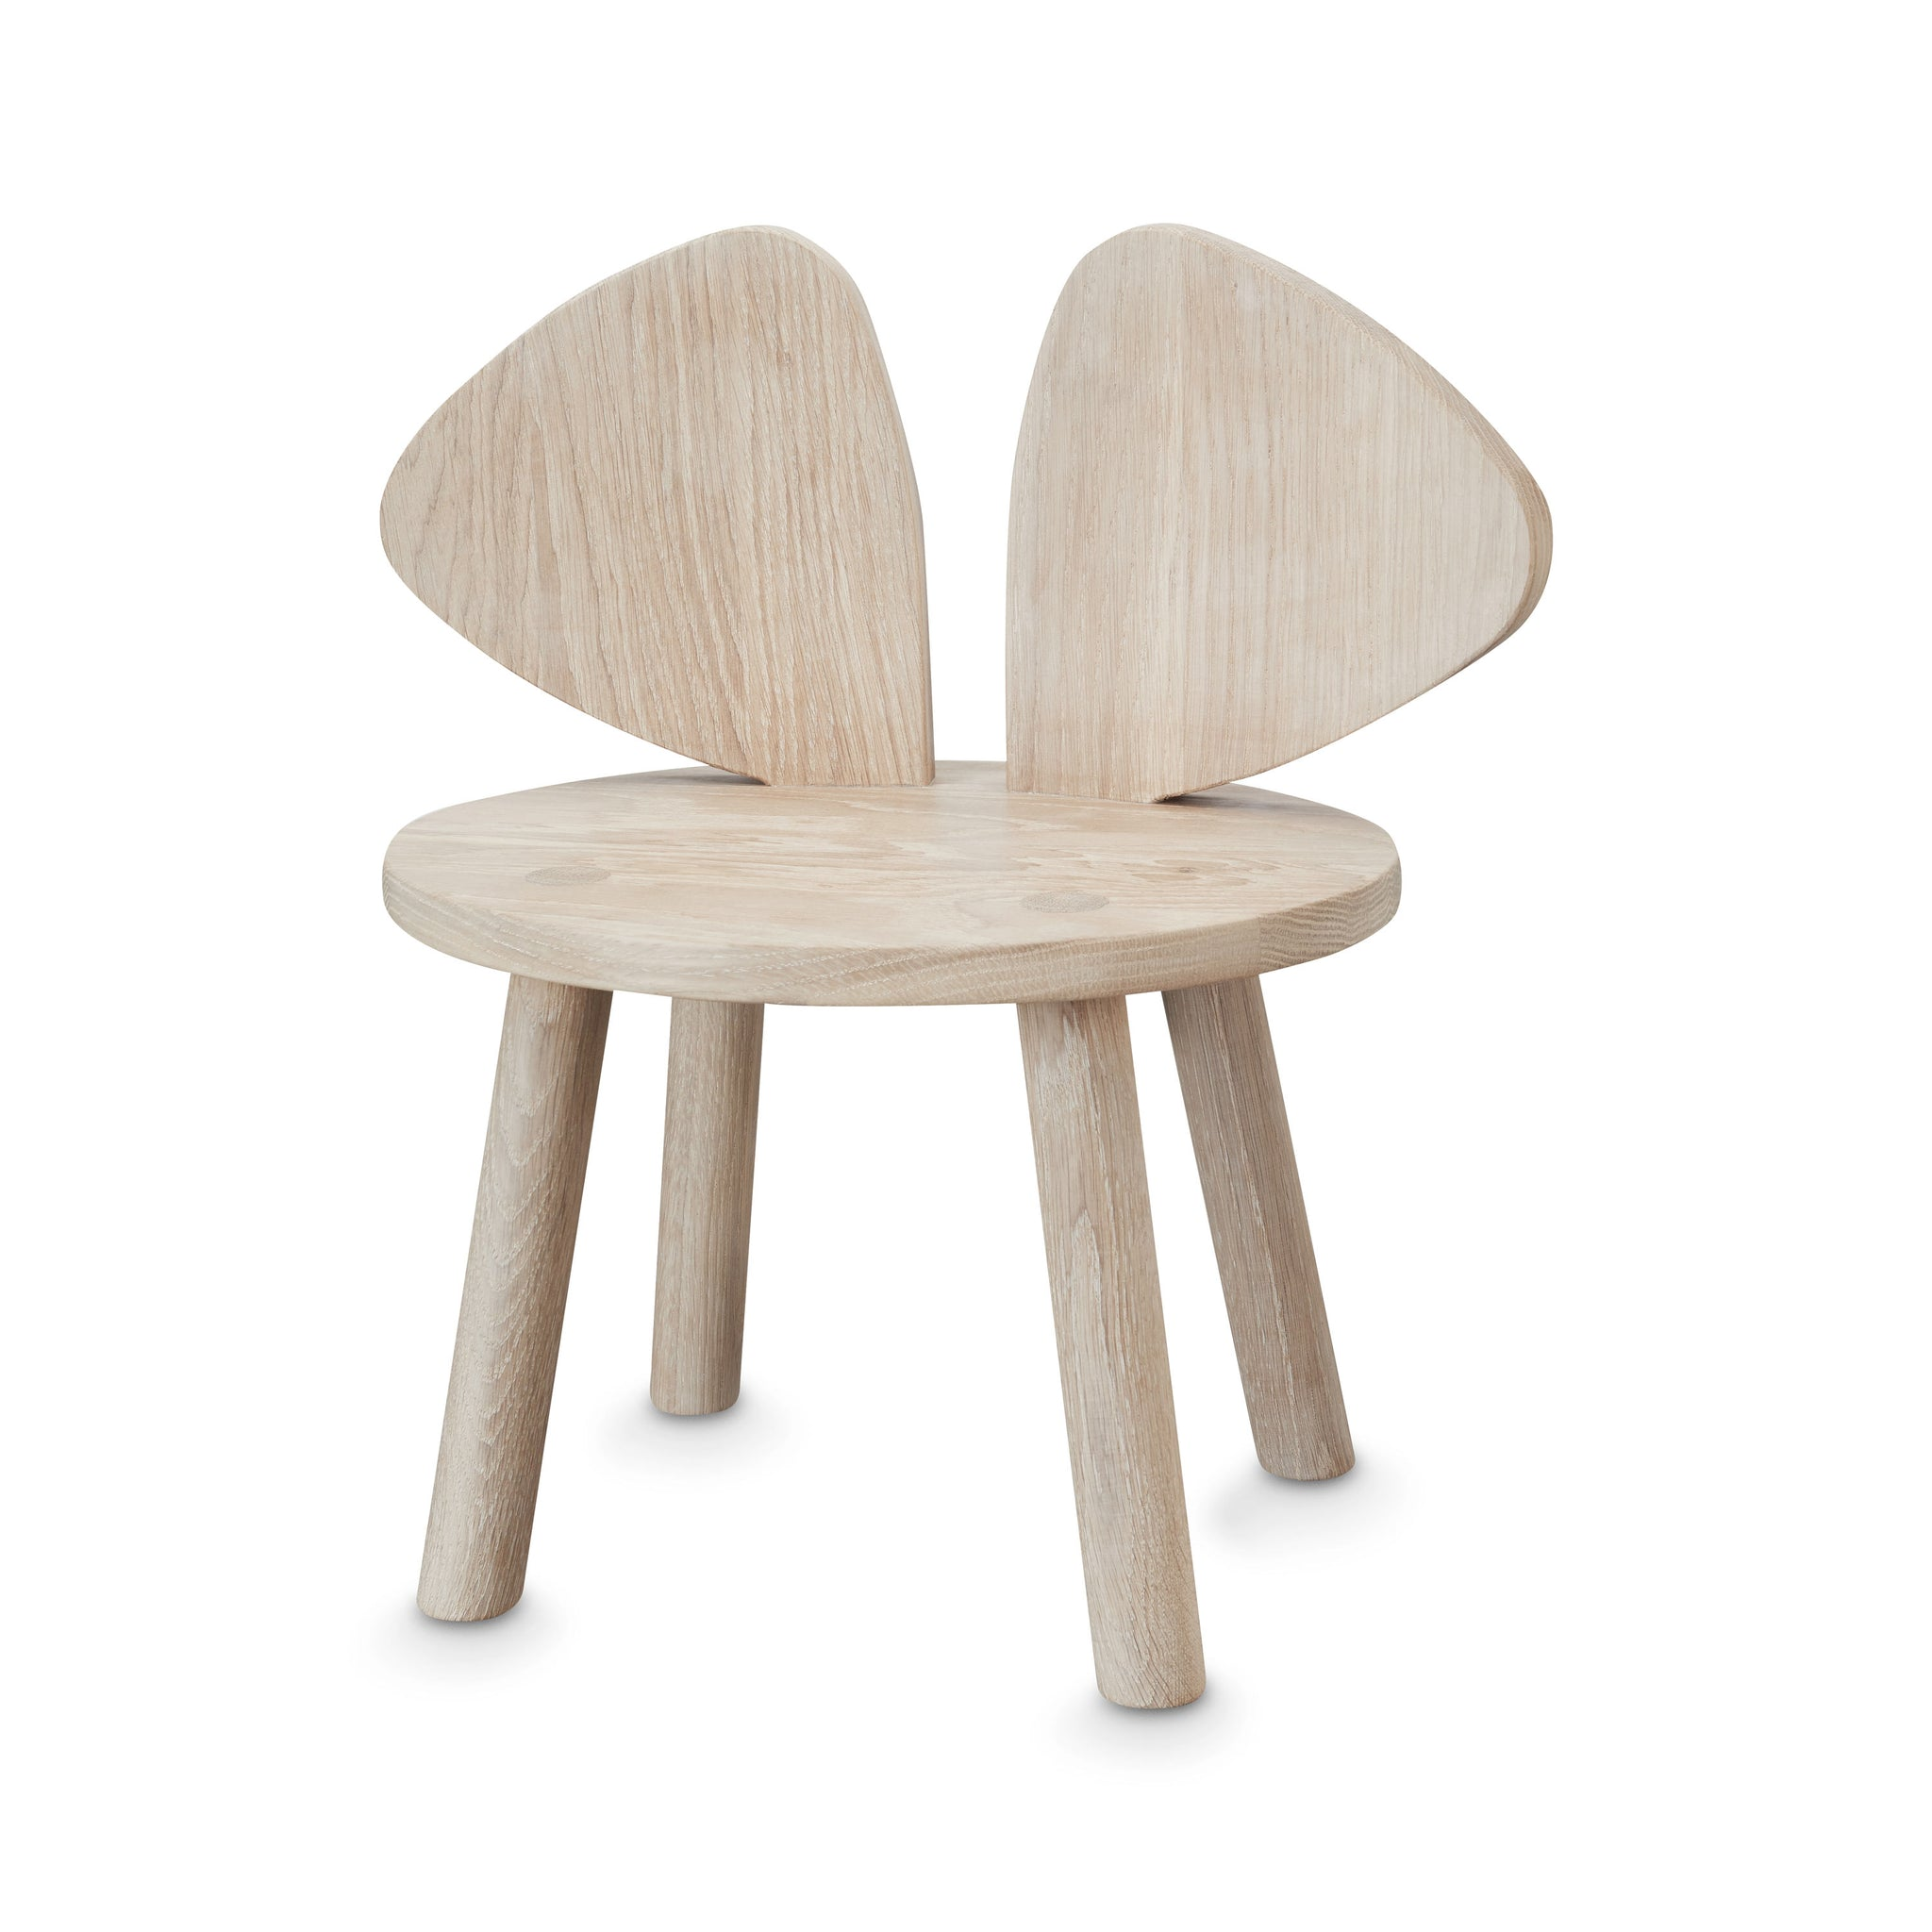 Mouse Chairs - Click for more colours